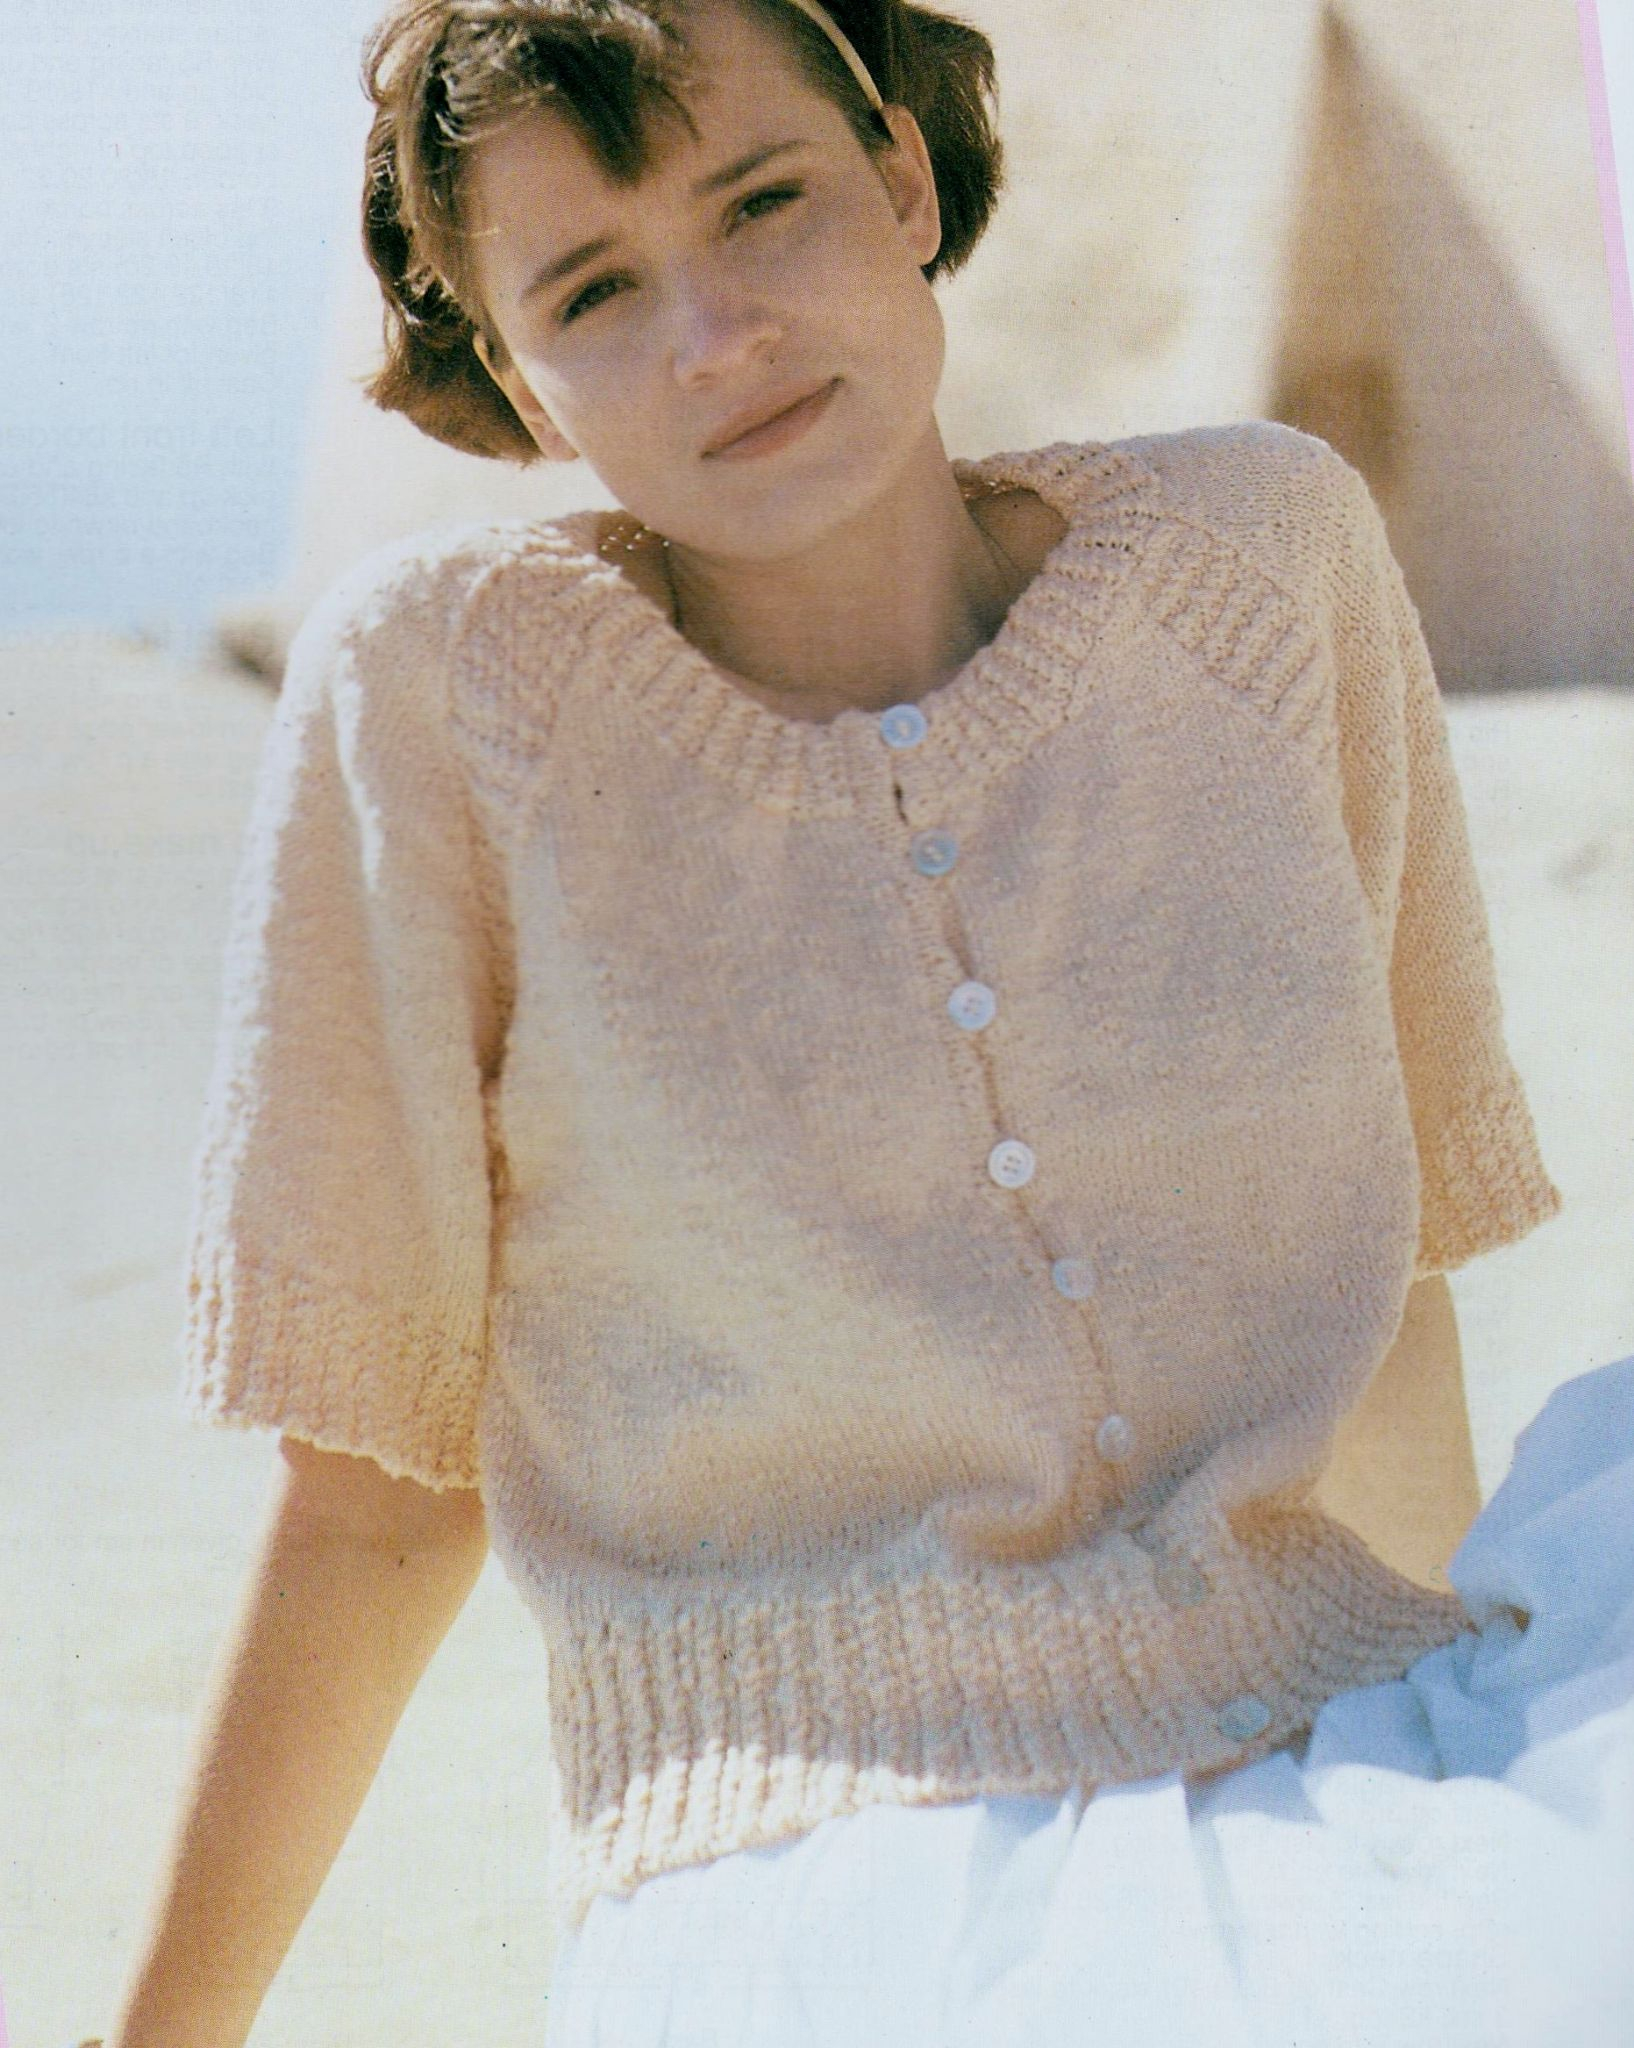 Easy Jumper Knitting Pattern Pdf Digital Download Vintage Knitting Pattern To Make A Pretty And Easy Ladies Short Sleeve Sweater Jumper Pullover In Double Knitting Bust 32 38